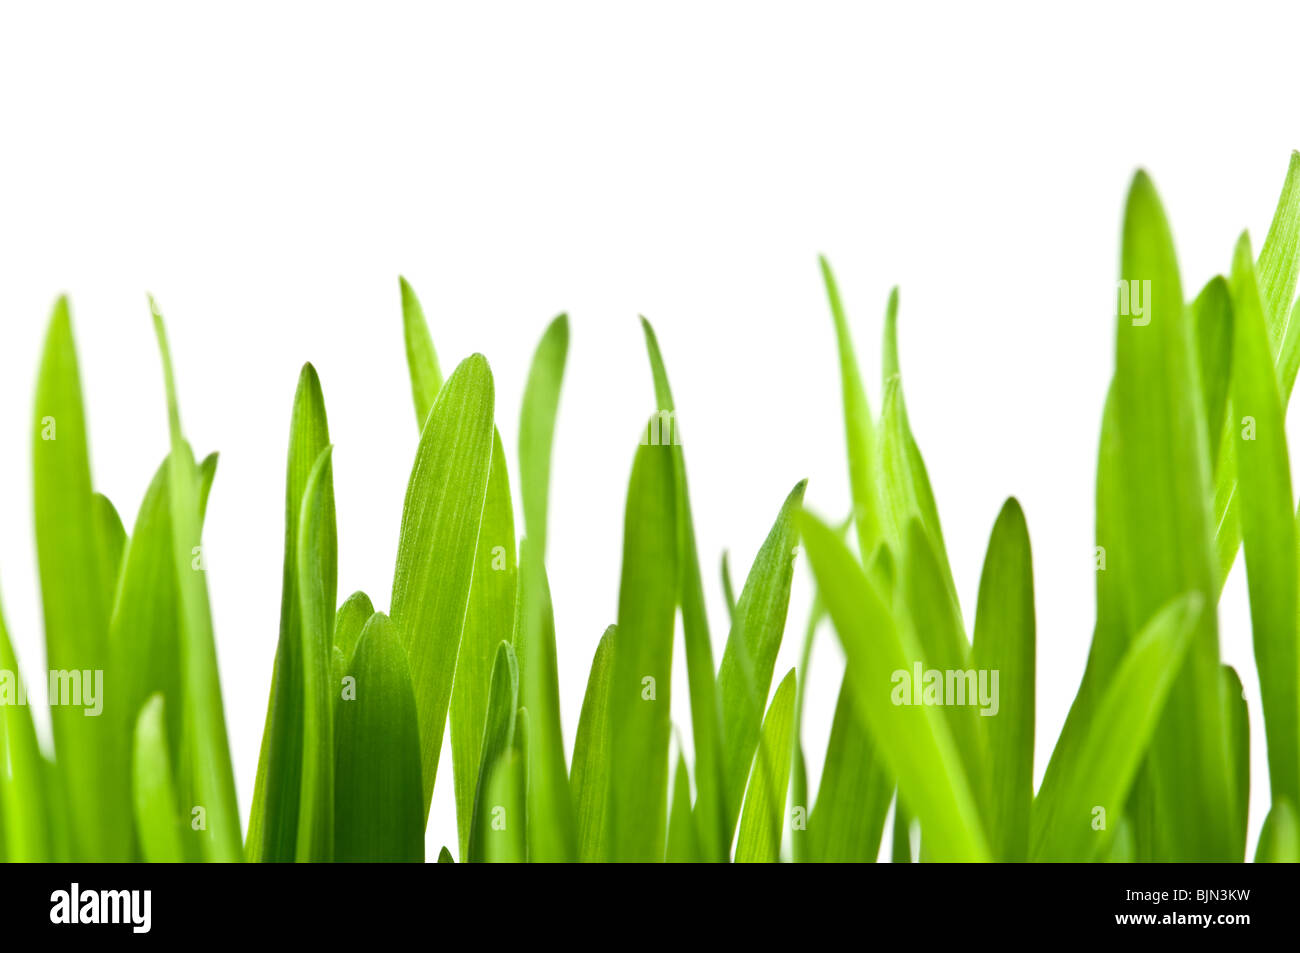 green grass isolated on white background - Stock Image